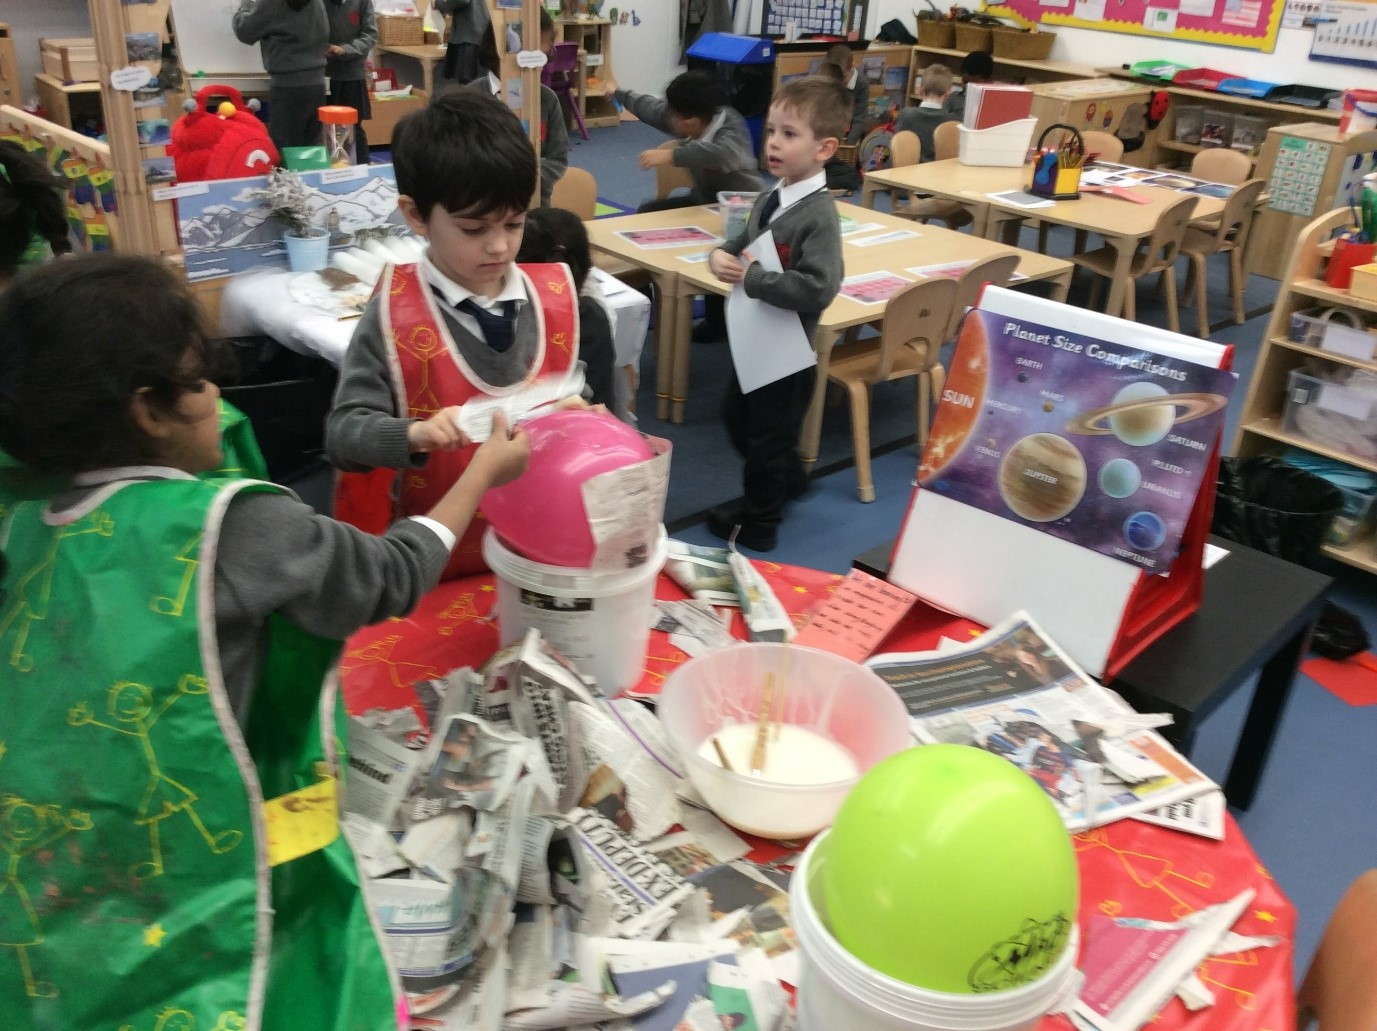 Making-planets-using-paper-mache